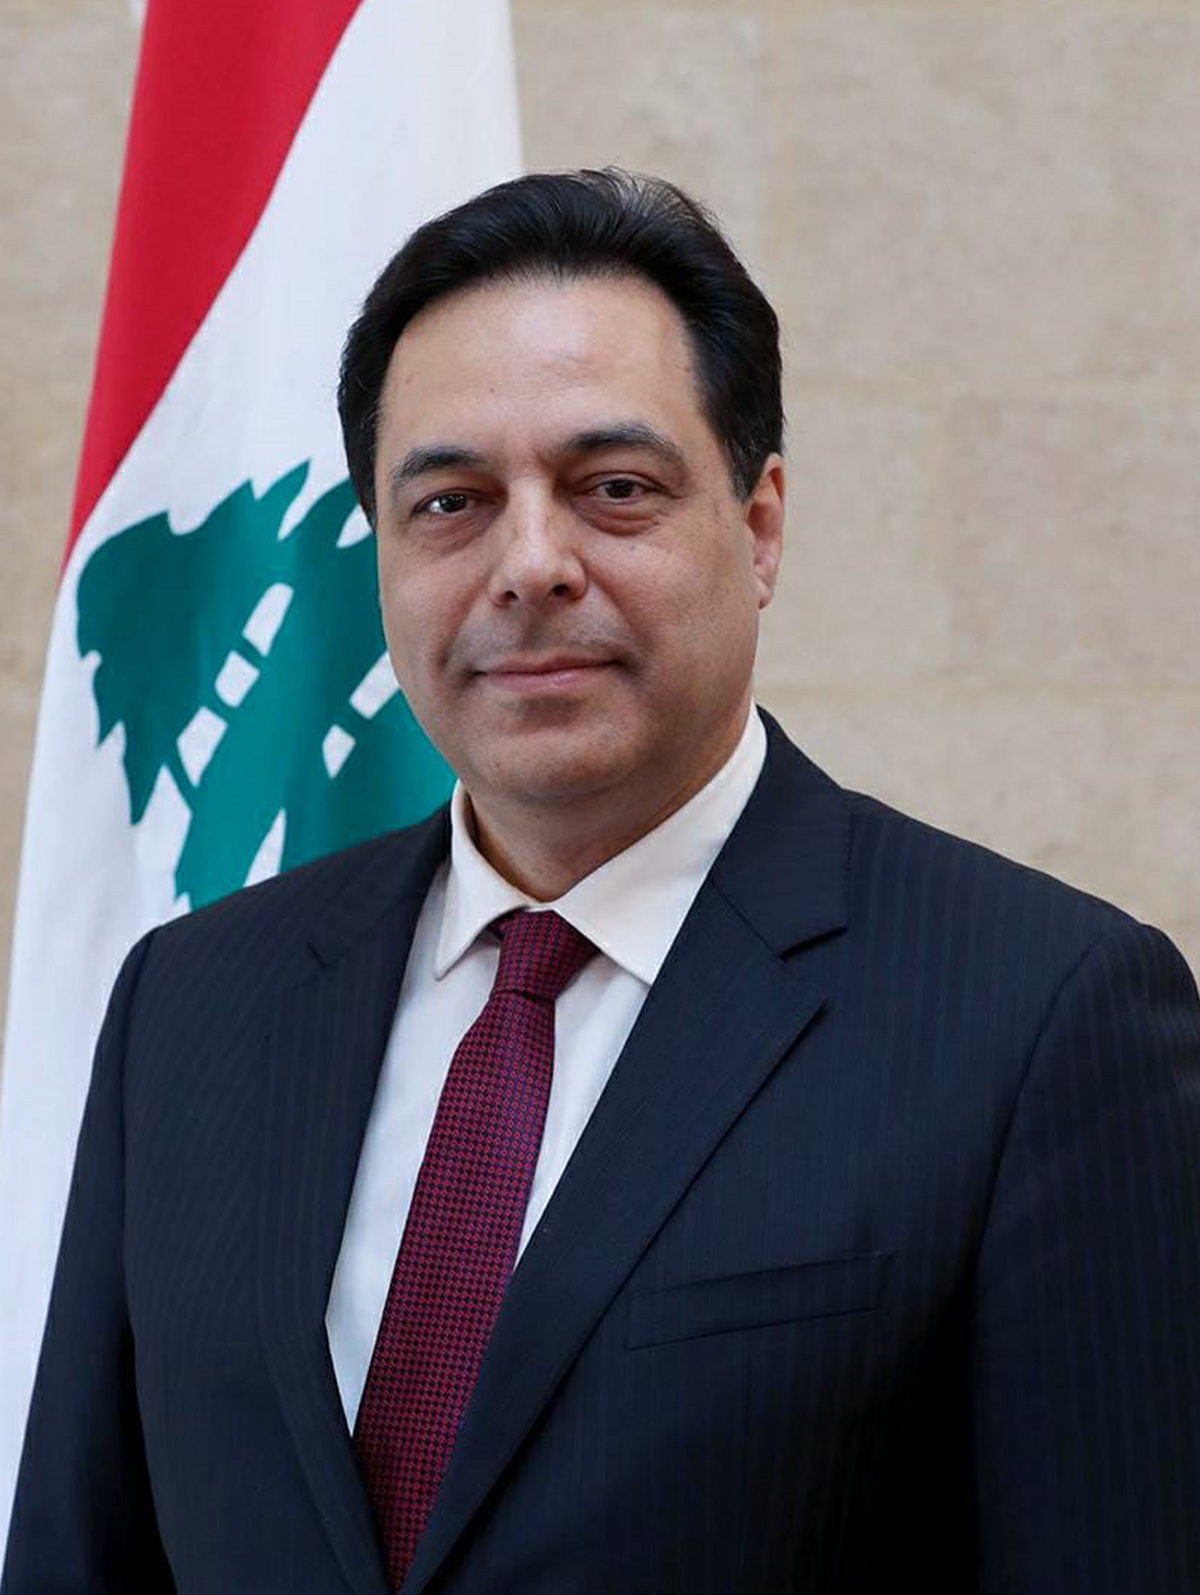 Lebanon names new cabinet ahead of clashes and crisis